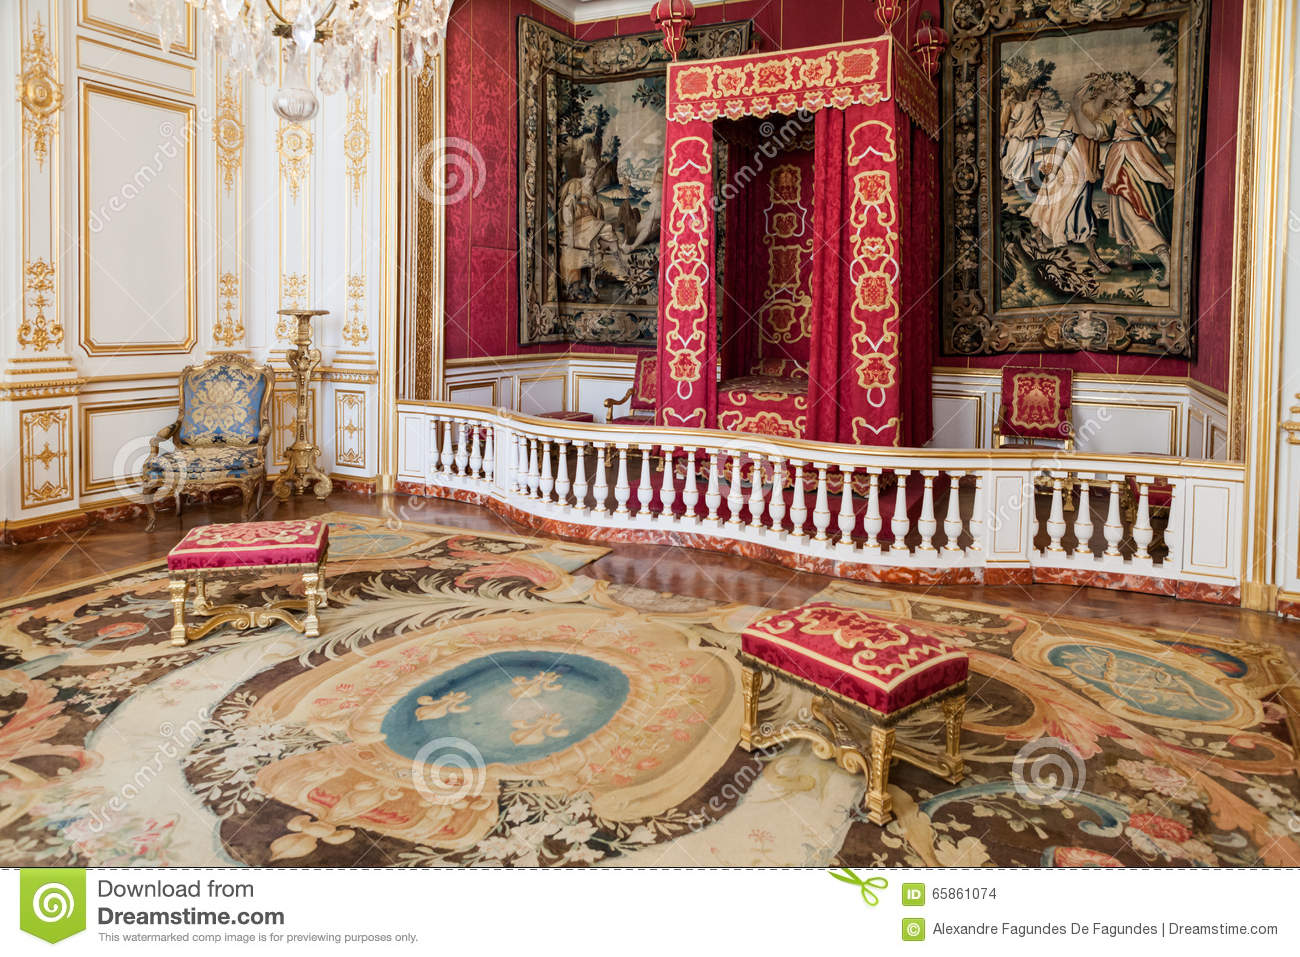 chambord castle loire valley france editorial stock image - image